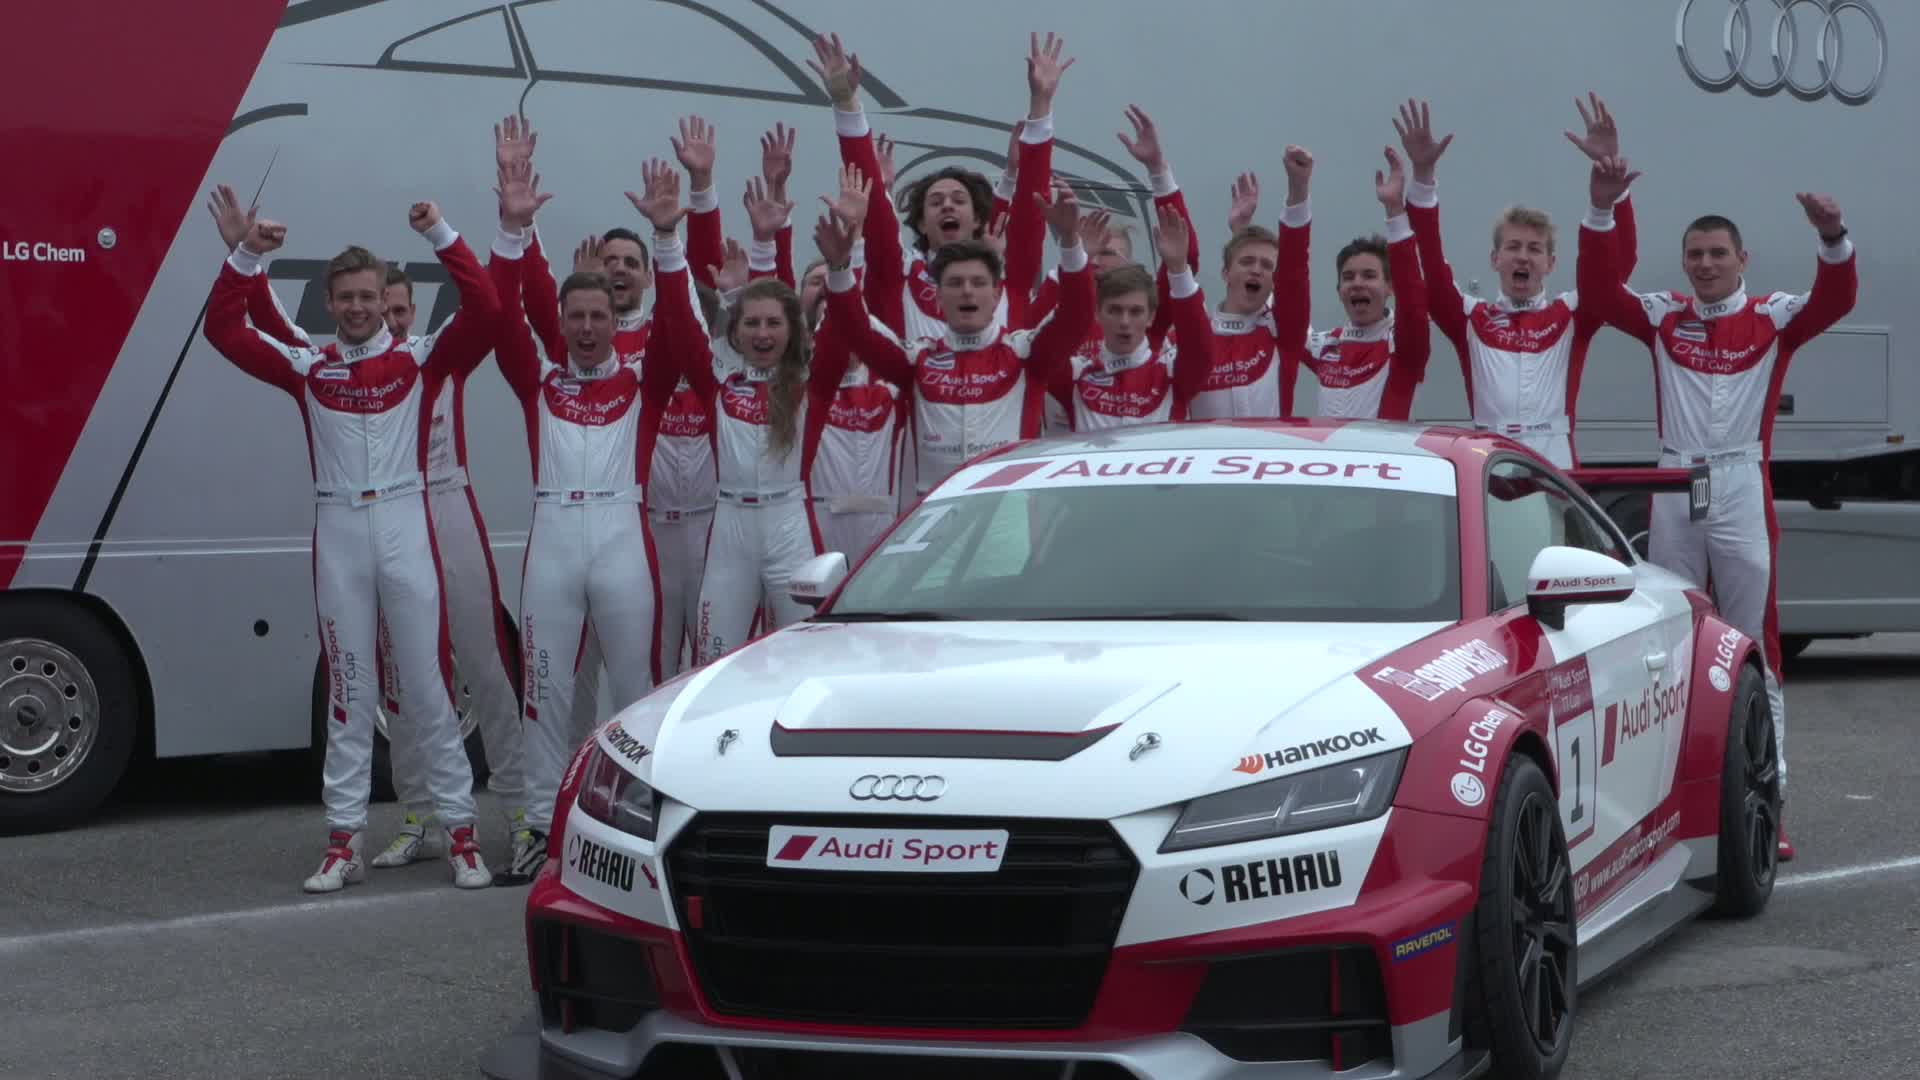 60 Seconds of Audi Sport 4/2016 - Audi Sport TT Cup, final test